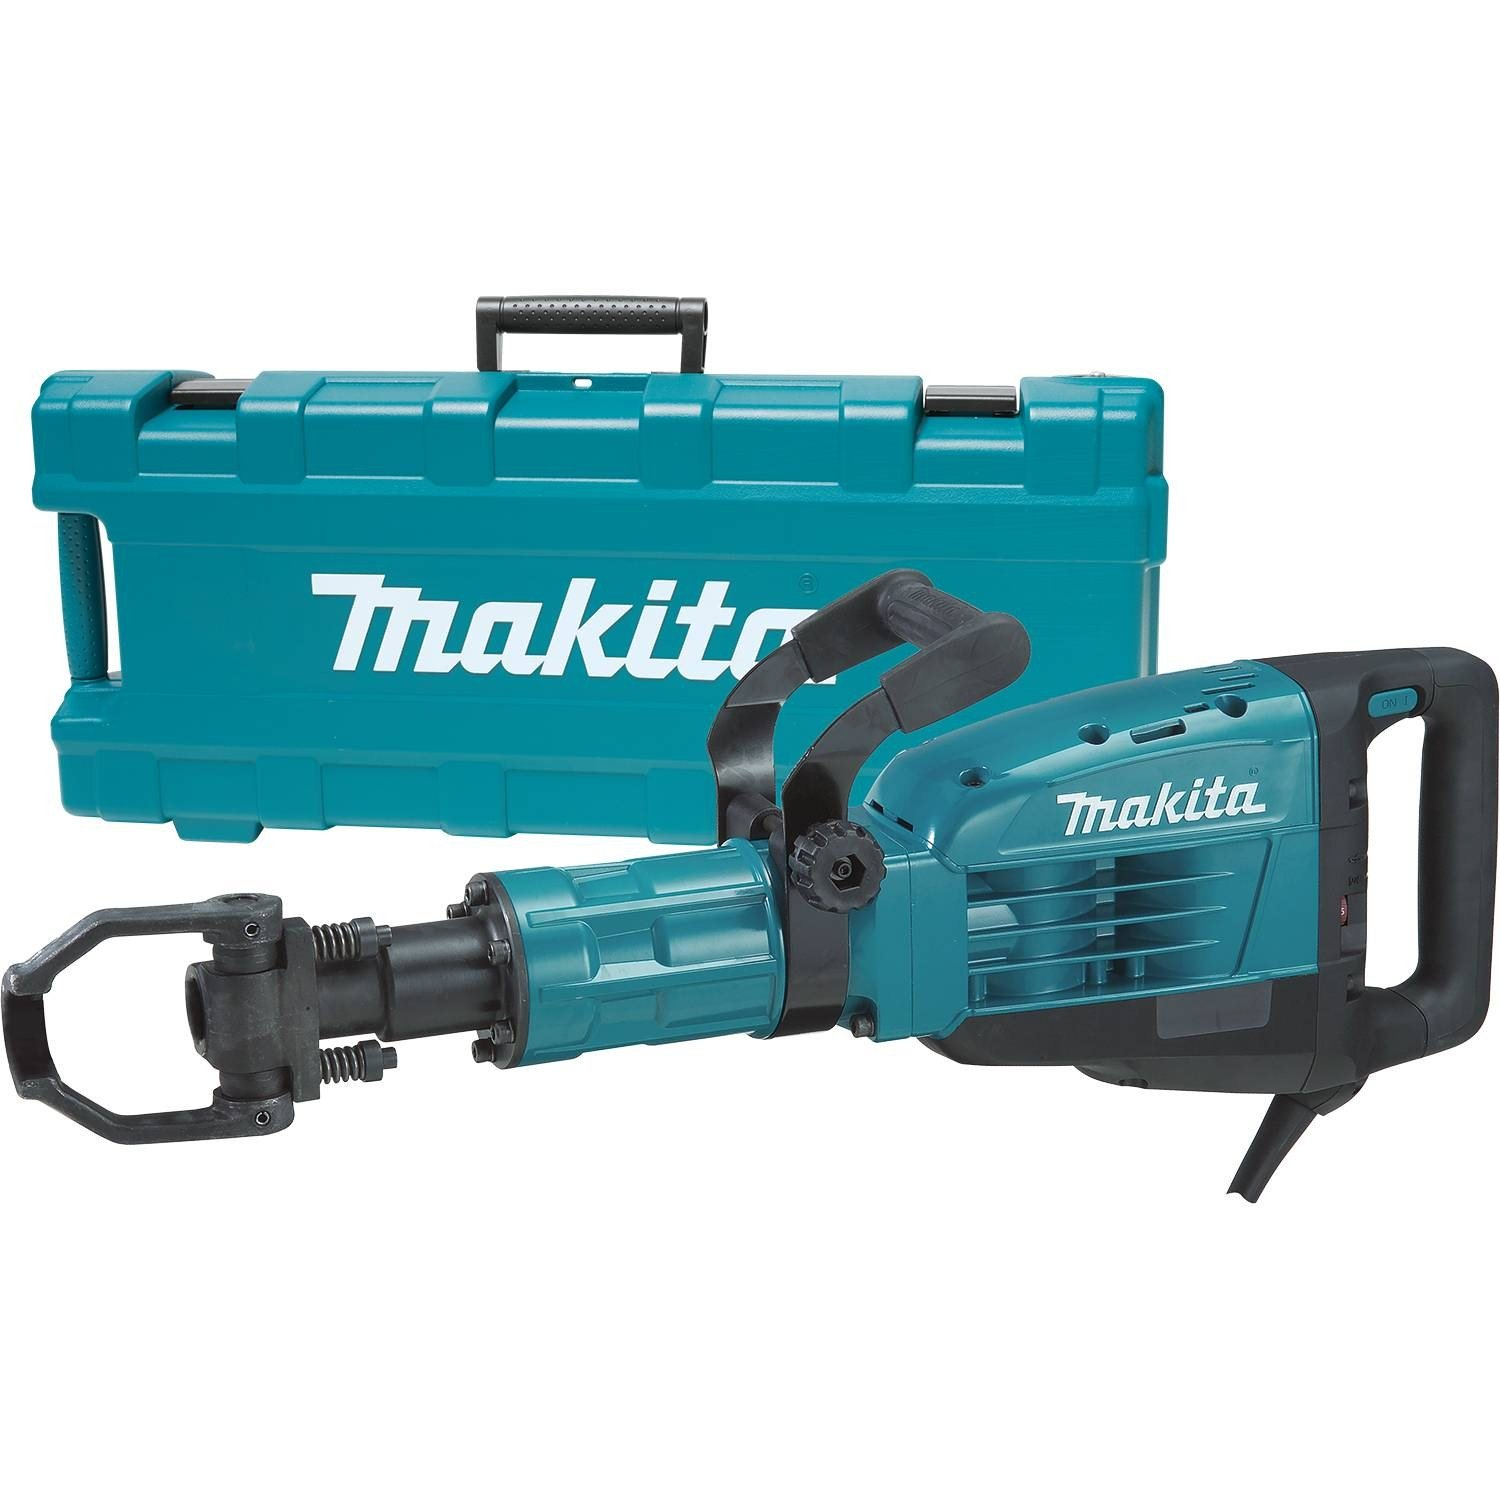 Makita Hm1307cb 35 Pound Demolition Hammer Power Rotary Hammers House Wiring Sri Lanka